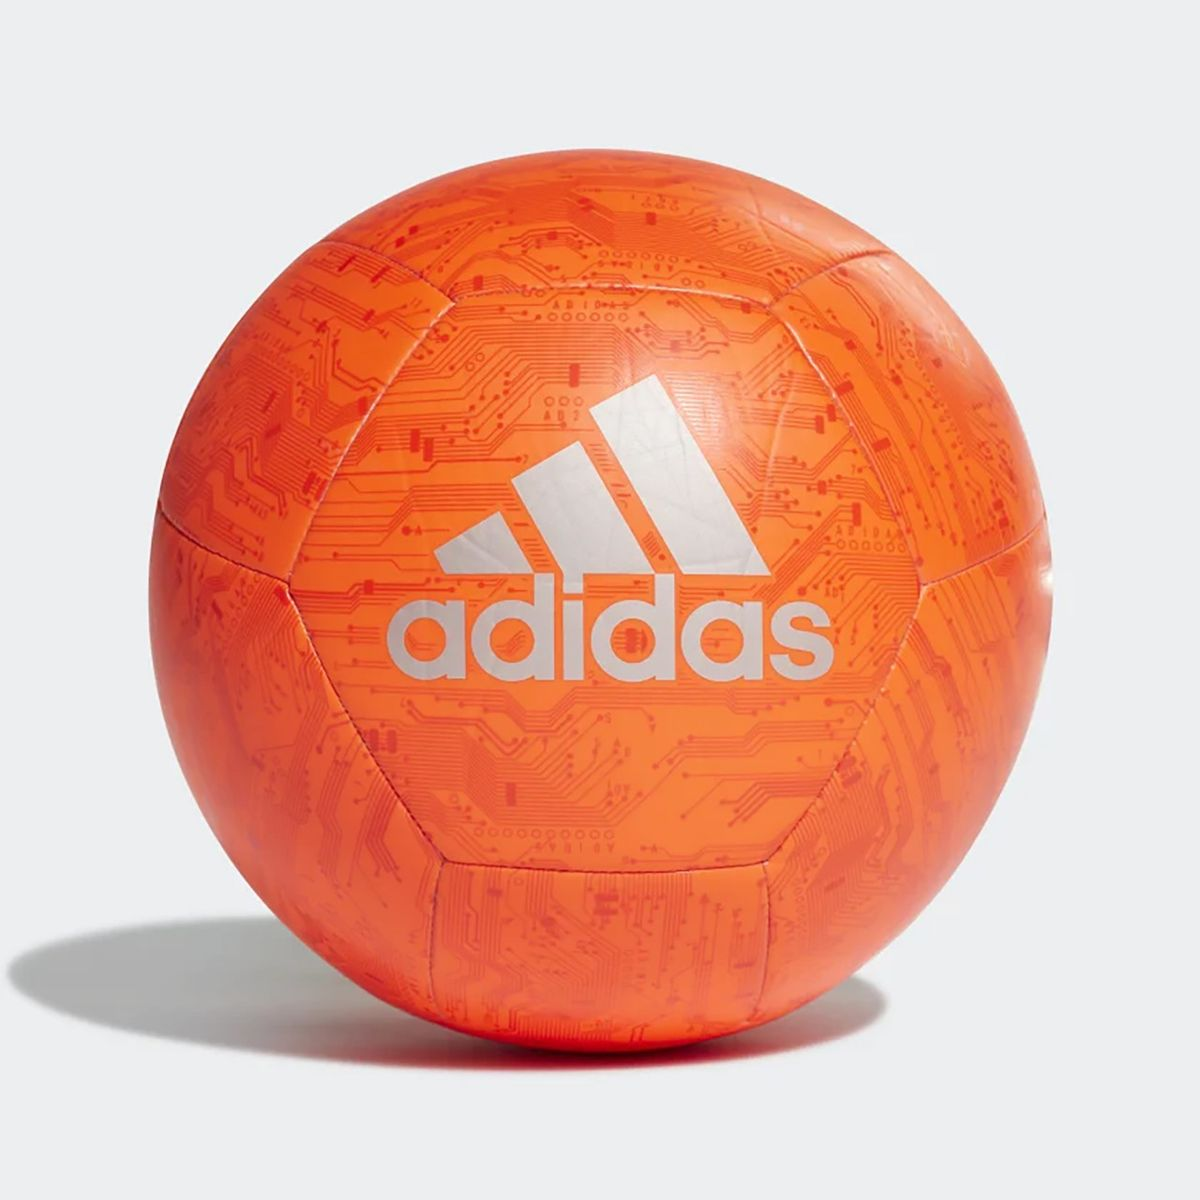 Adidas Scores With a Soccer Ball for the Digital Age – Design Milk